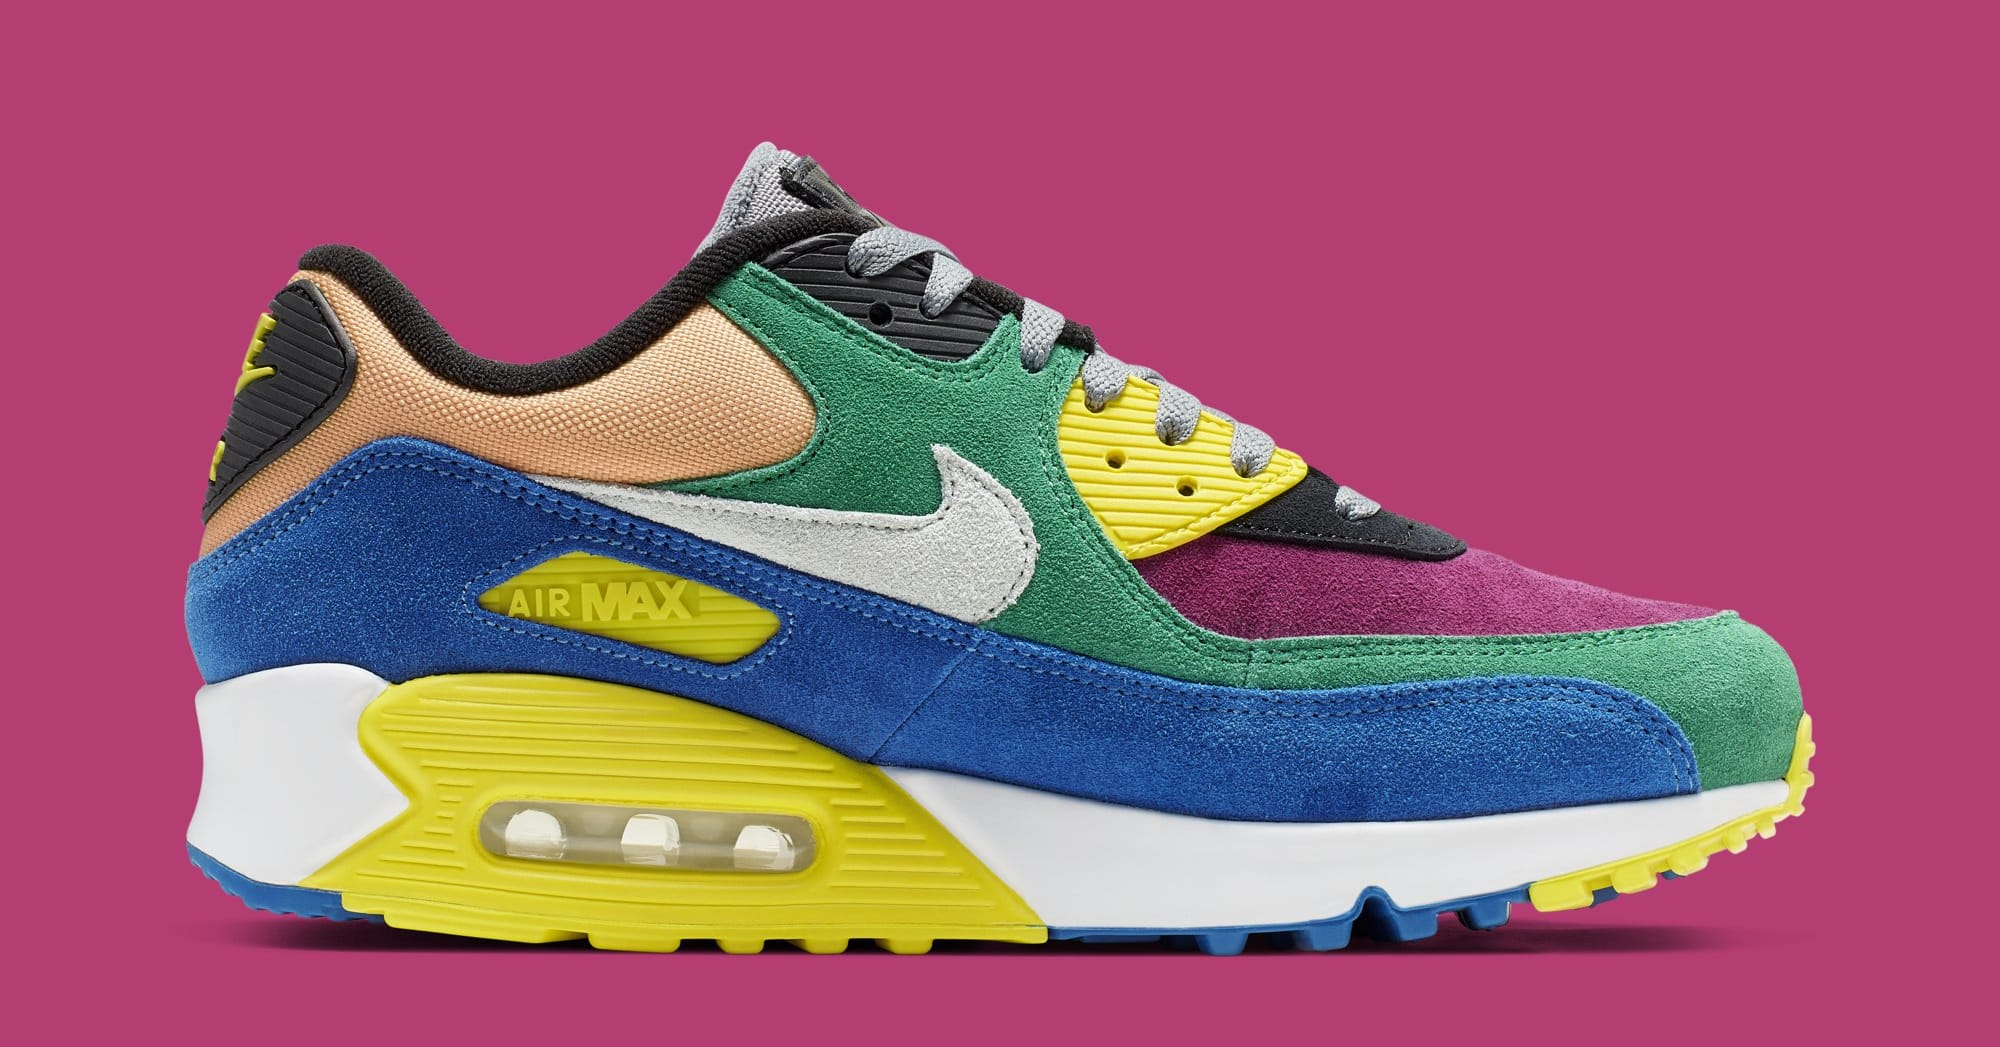 64e674a8c2d Nike Air Max 90 QS 'Viotech 2.0' Lucid Green/Game Royal CD0917-300 ...